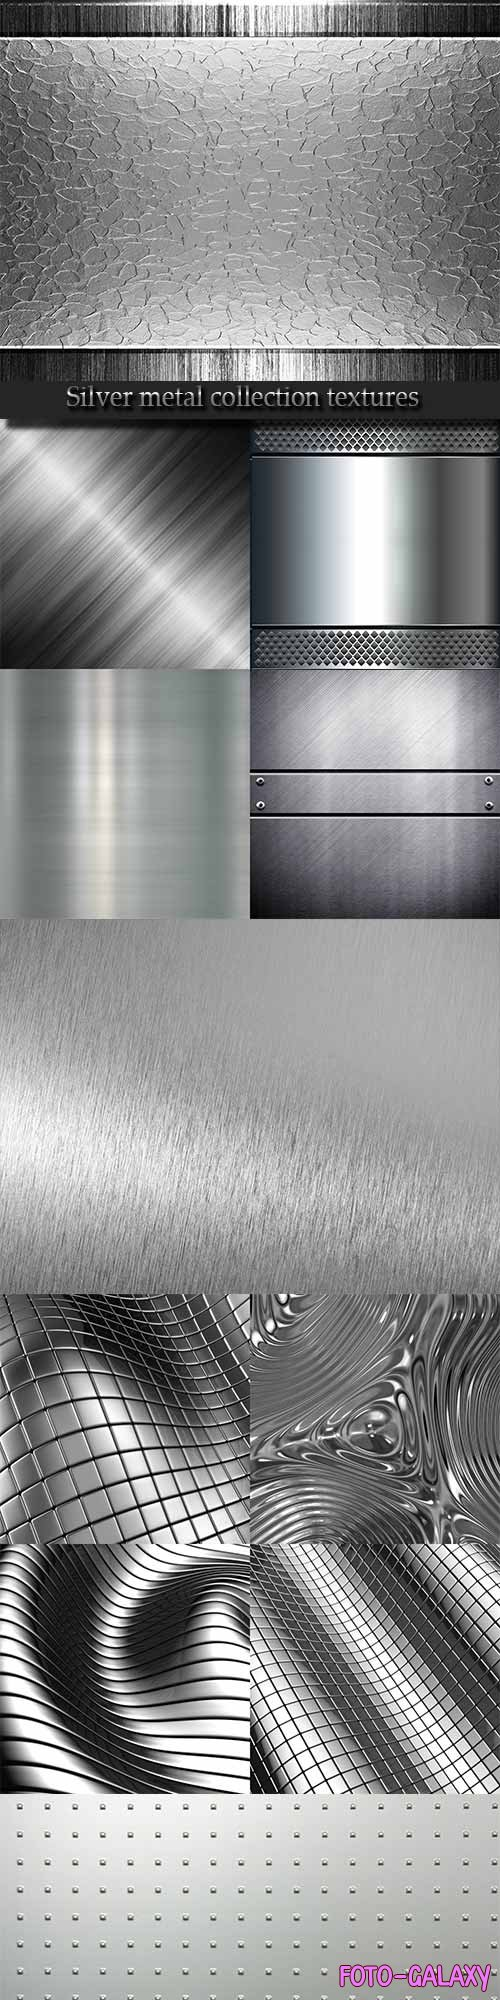 Silver metal collection textures